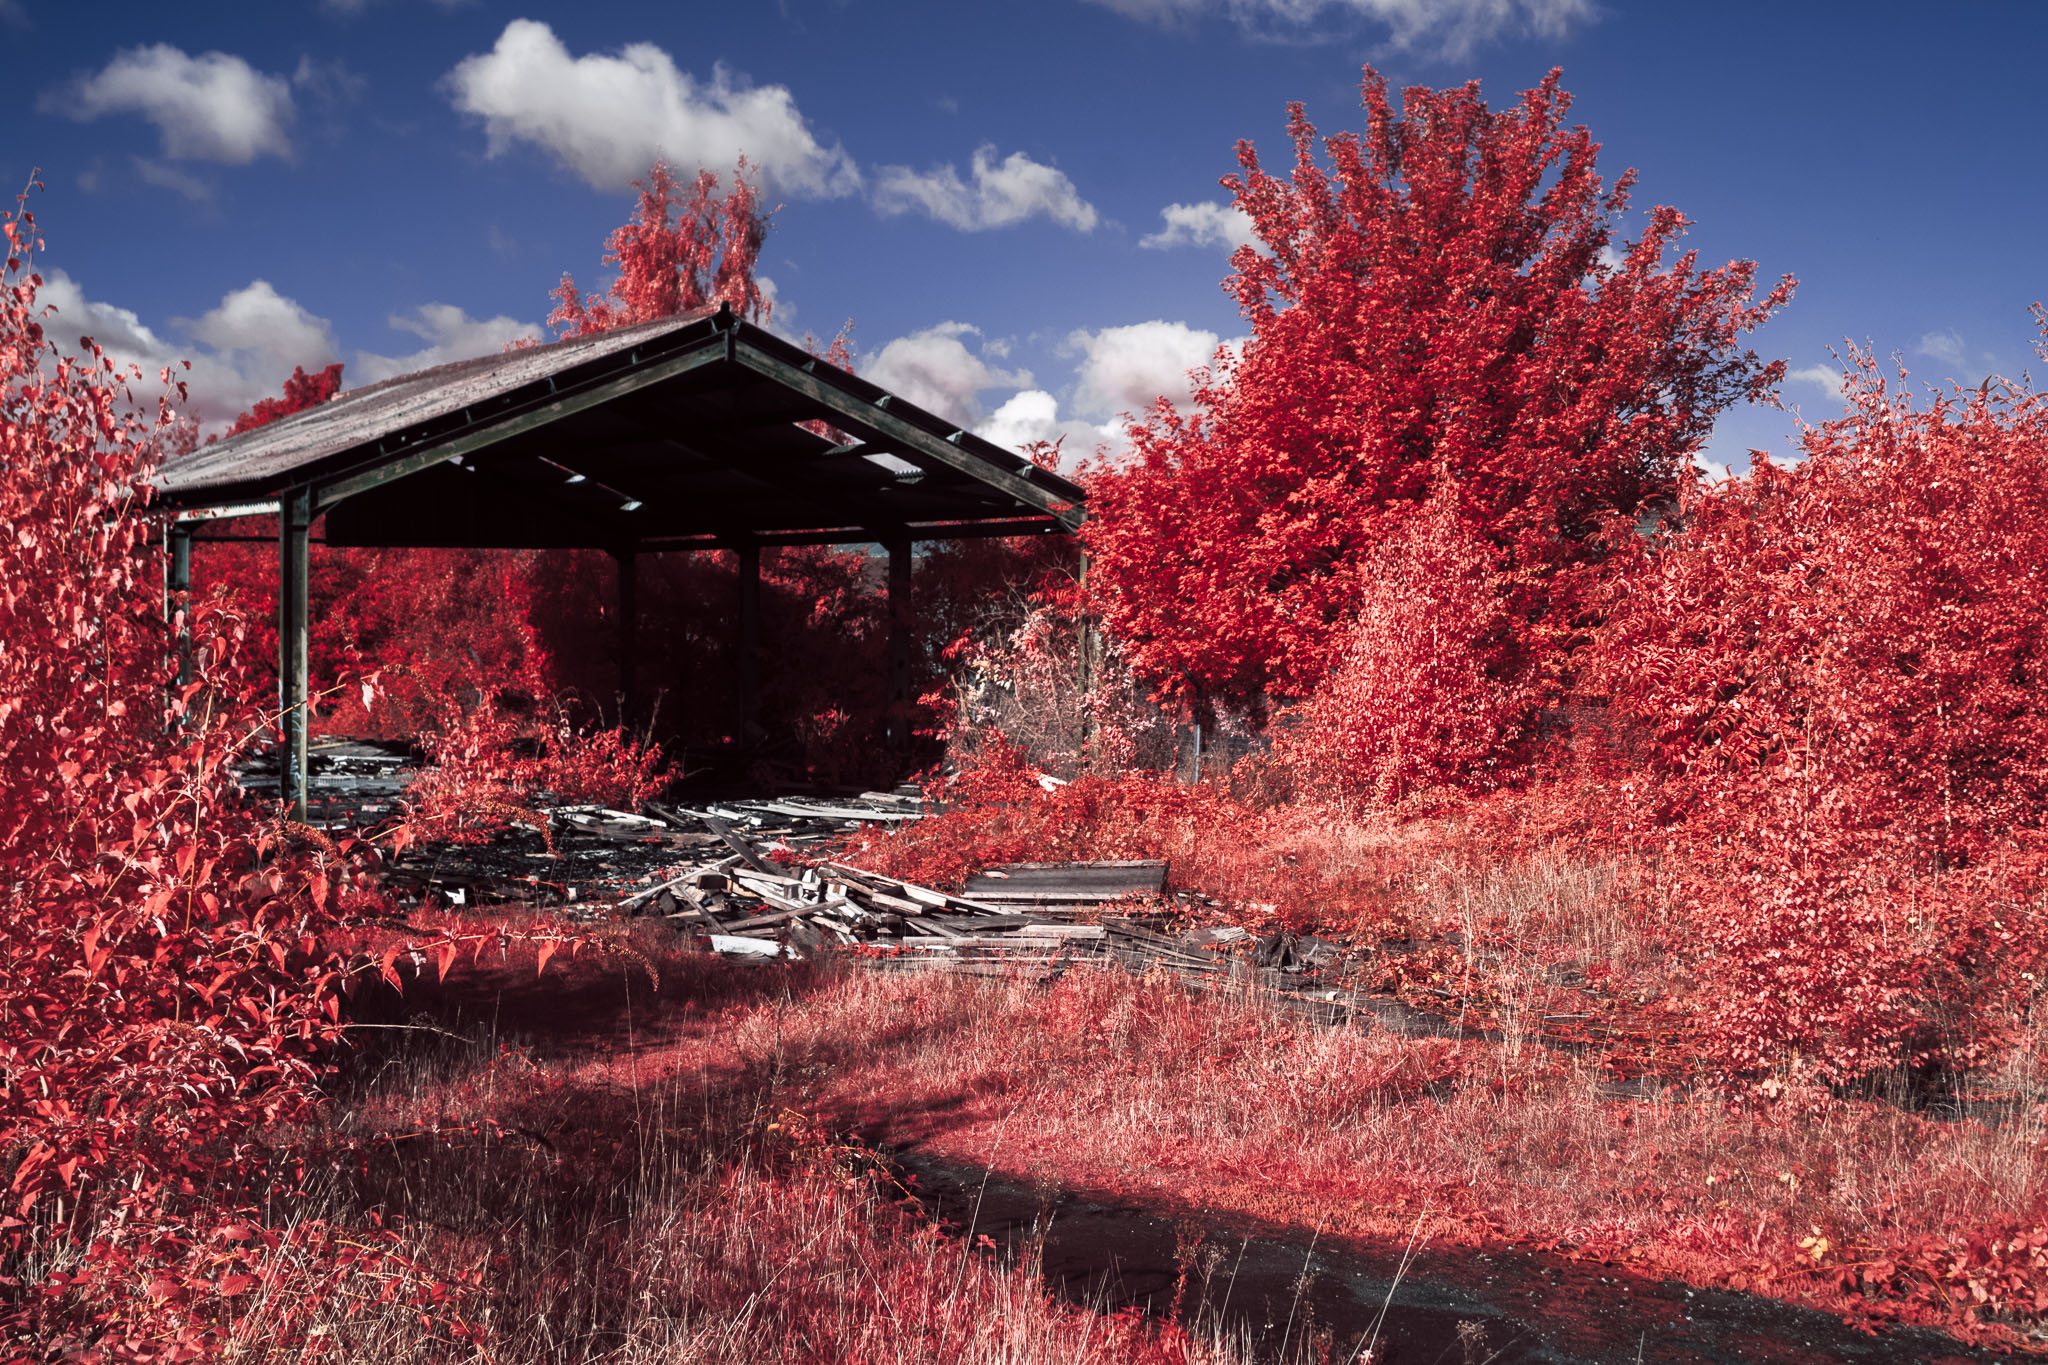 Kodak EIR Colour Infrared, Edgelands, Wasteland, Out of sight, Tram Depot, Warehouse ©Jonny Sutton